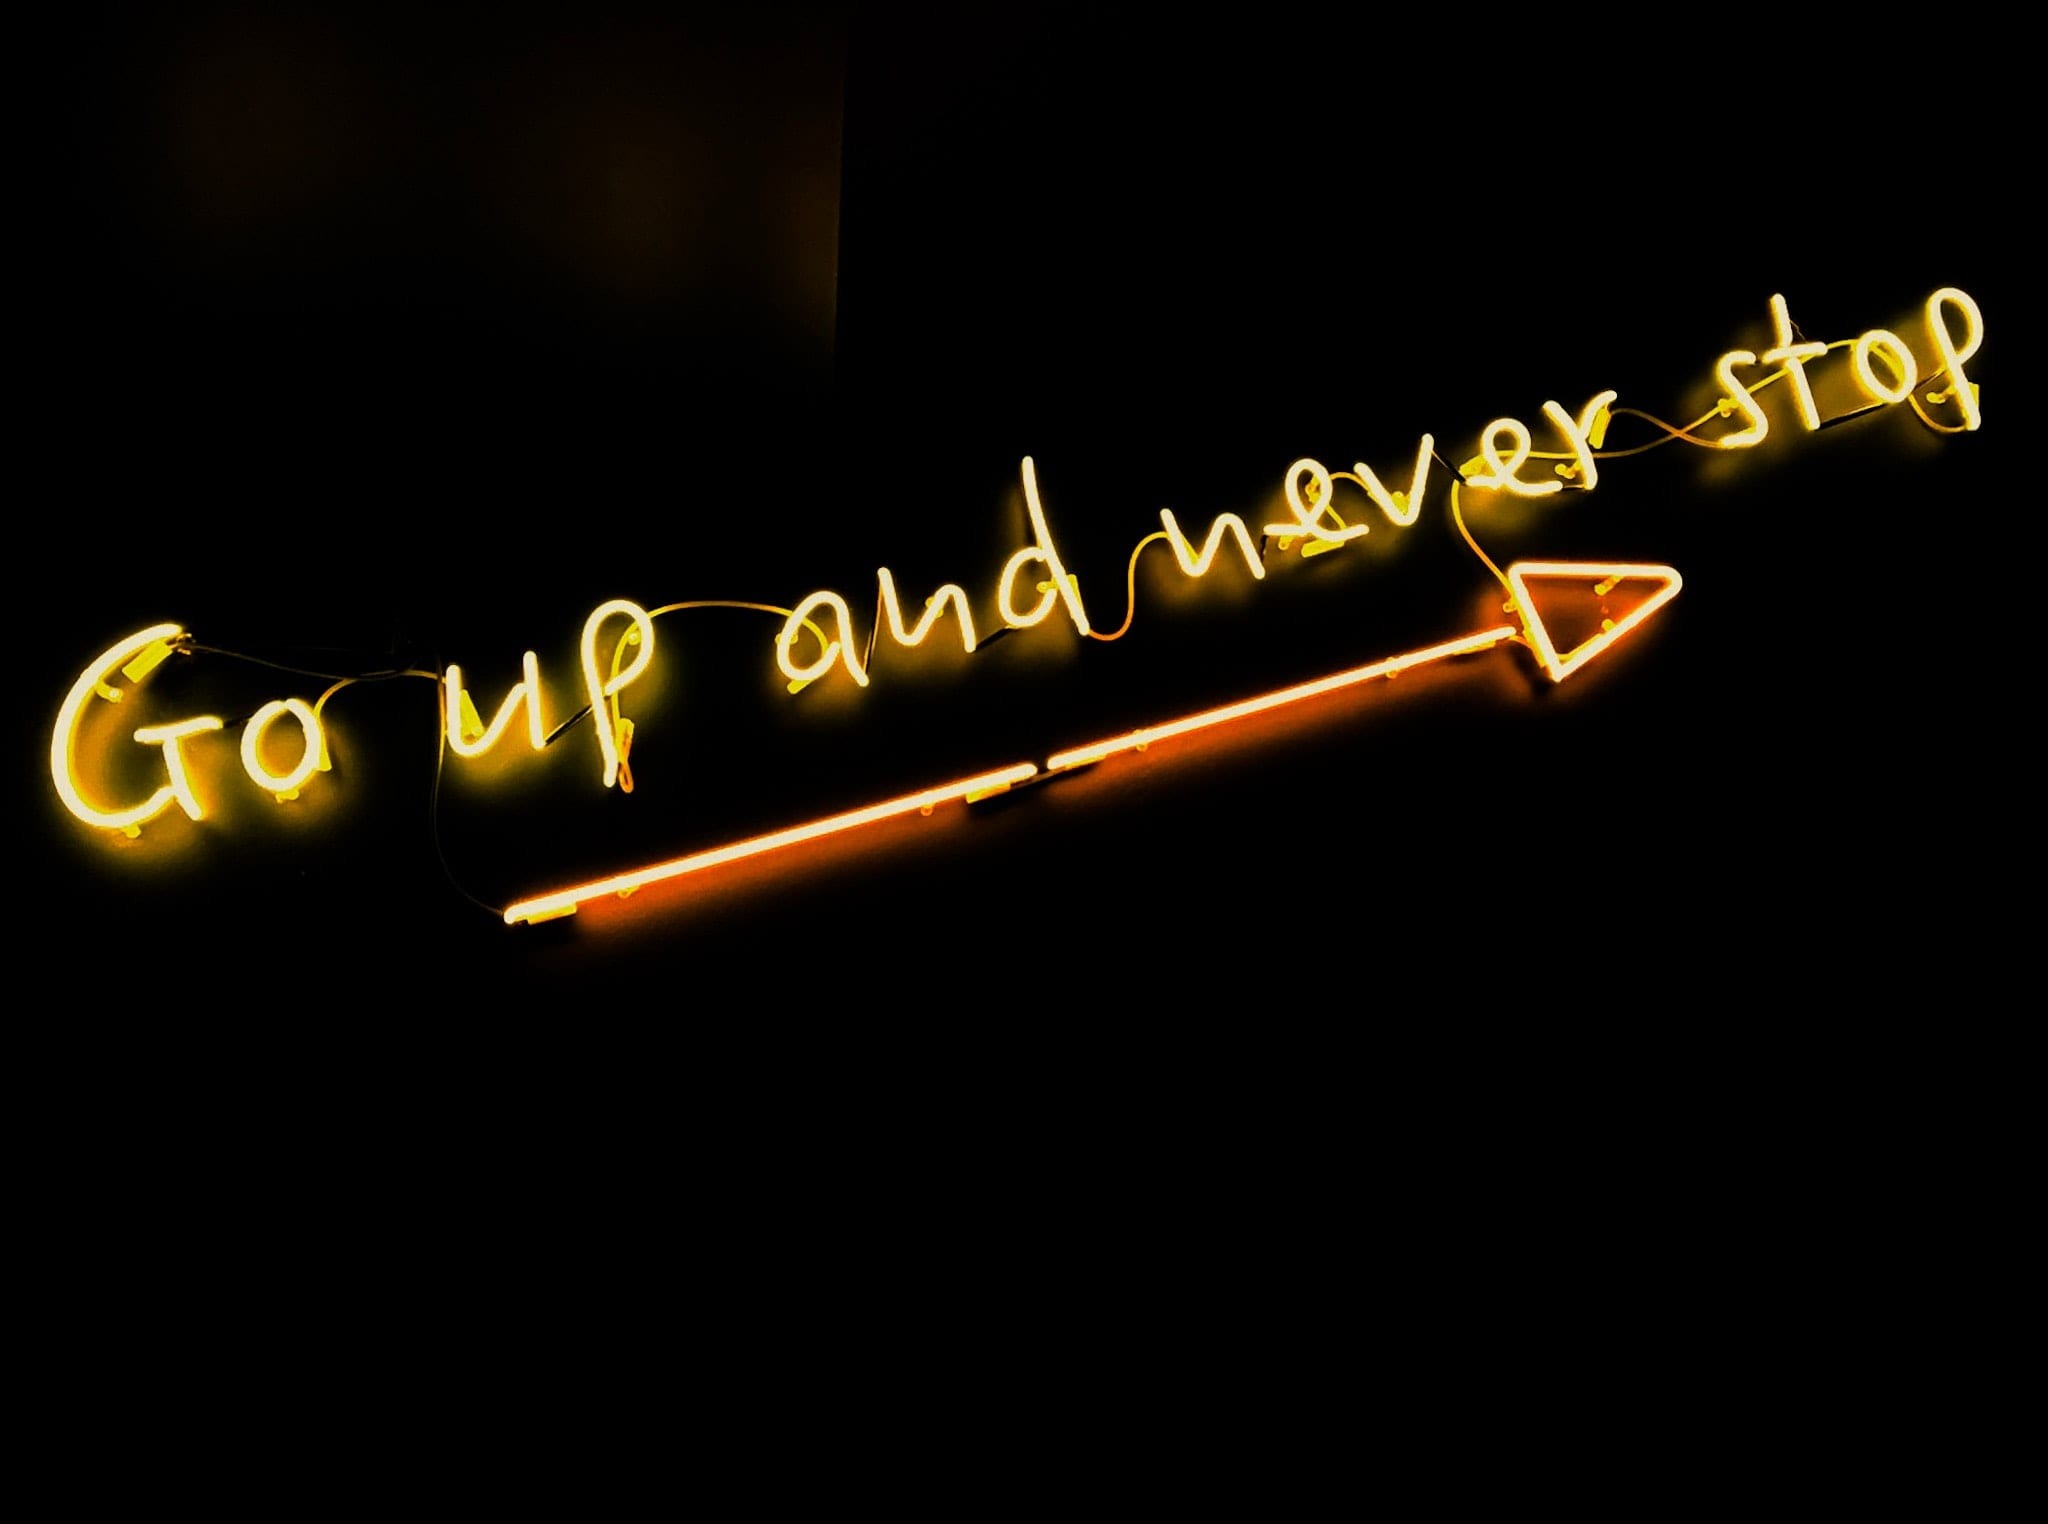 Go up and never stop!